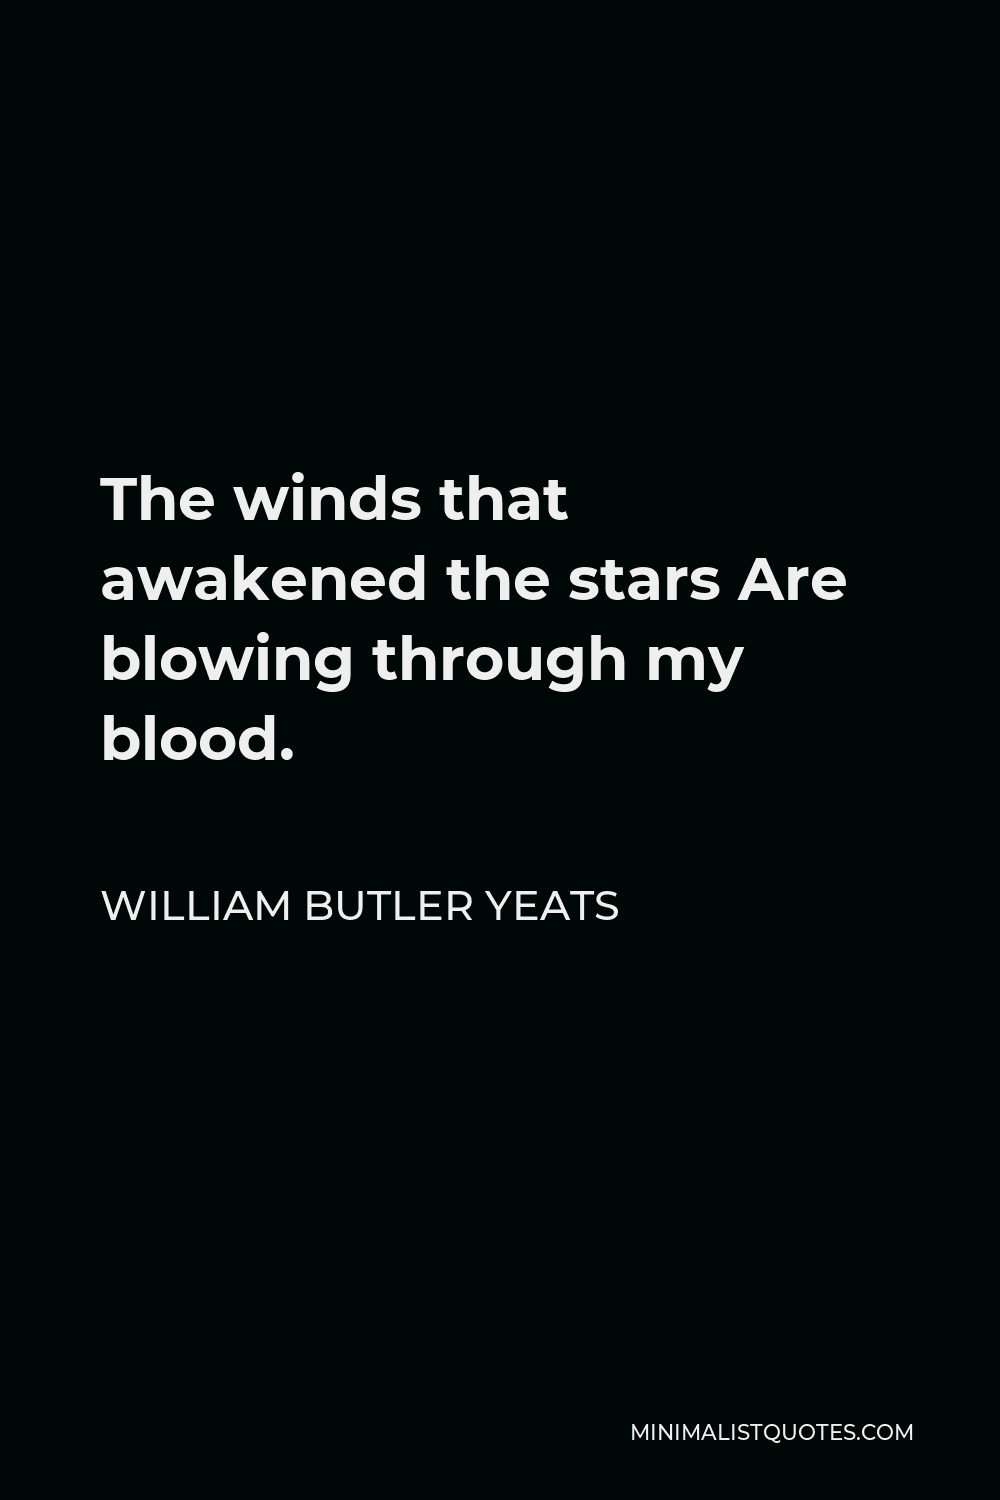 William Butler Yeats Quote - The winds that awakened the stars Are blowing through my blood.